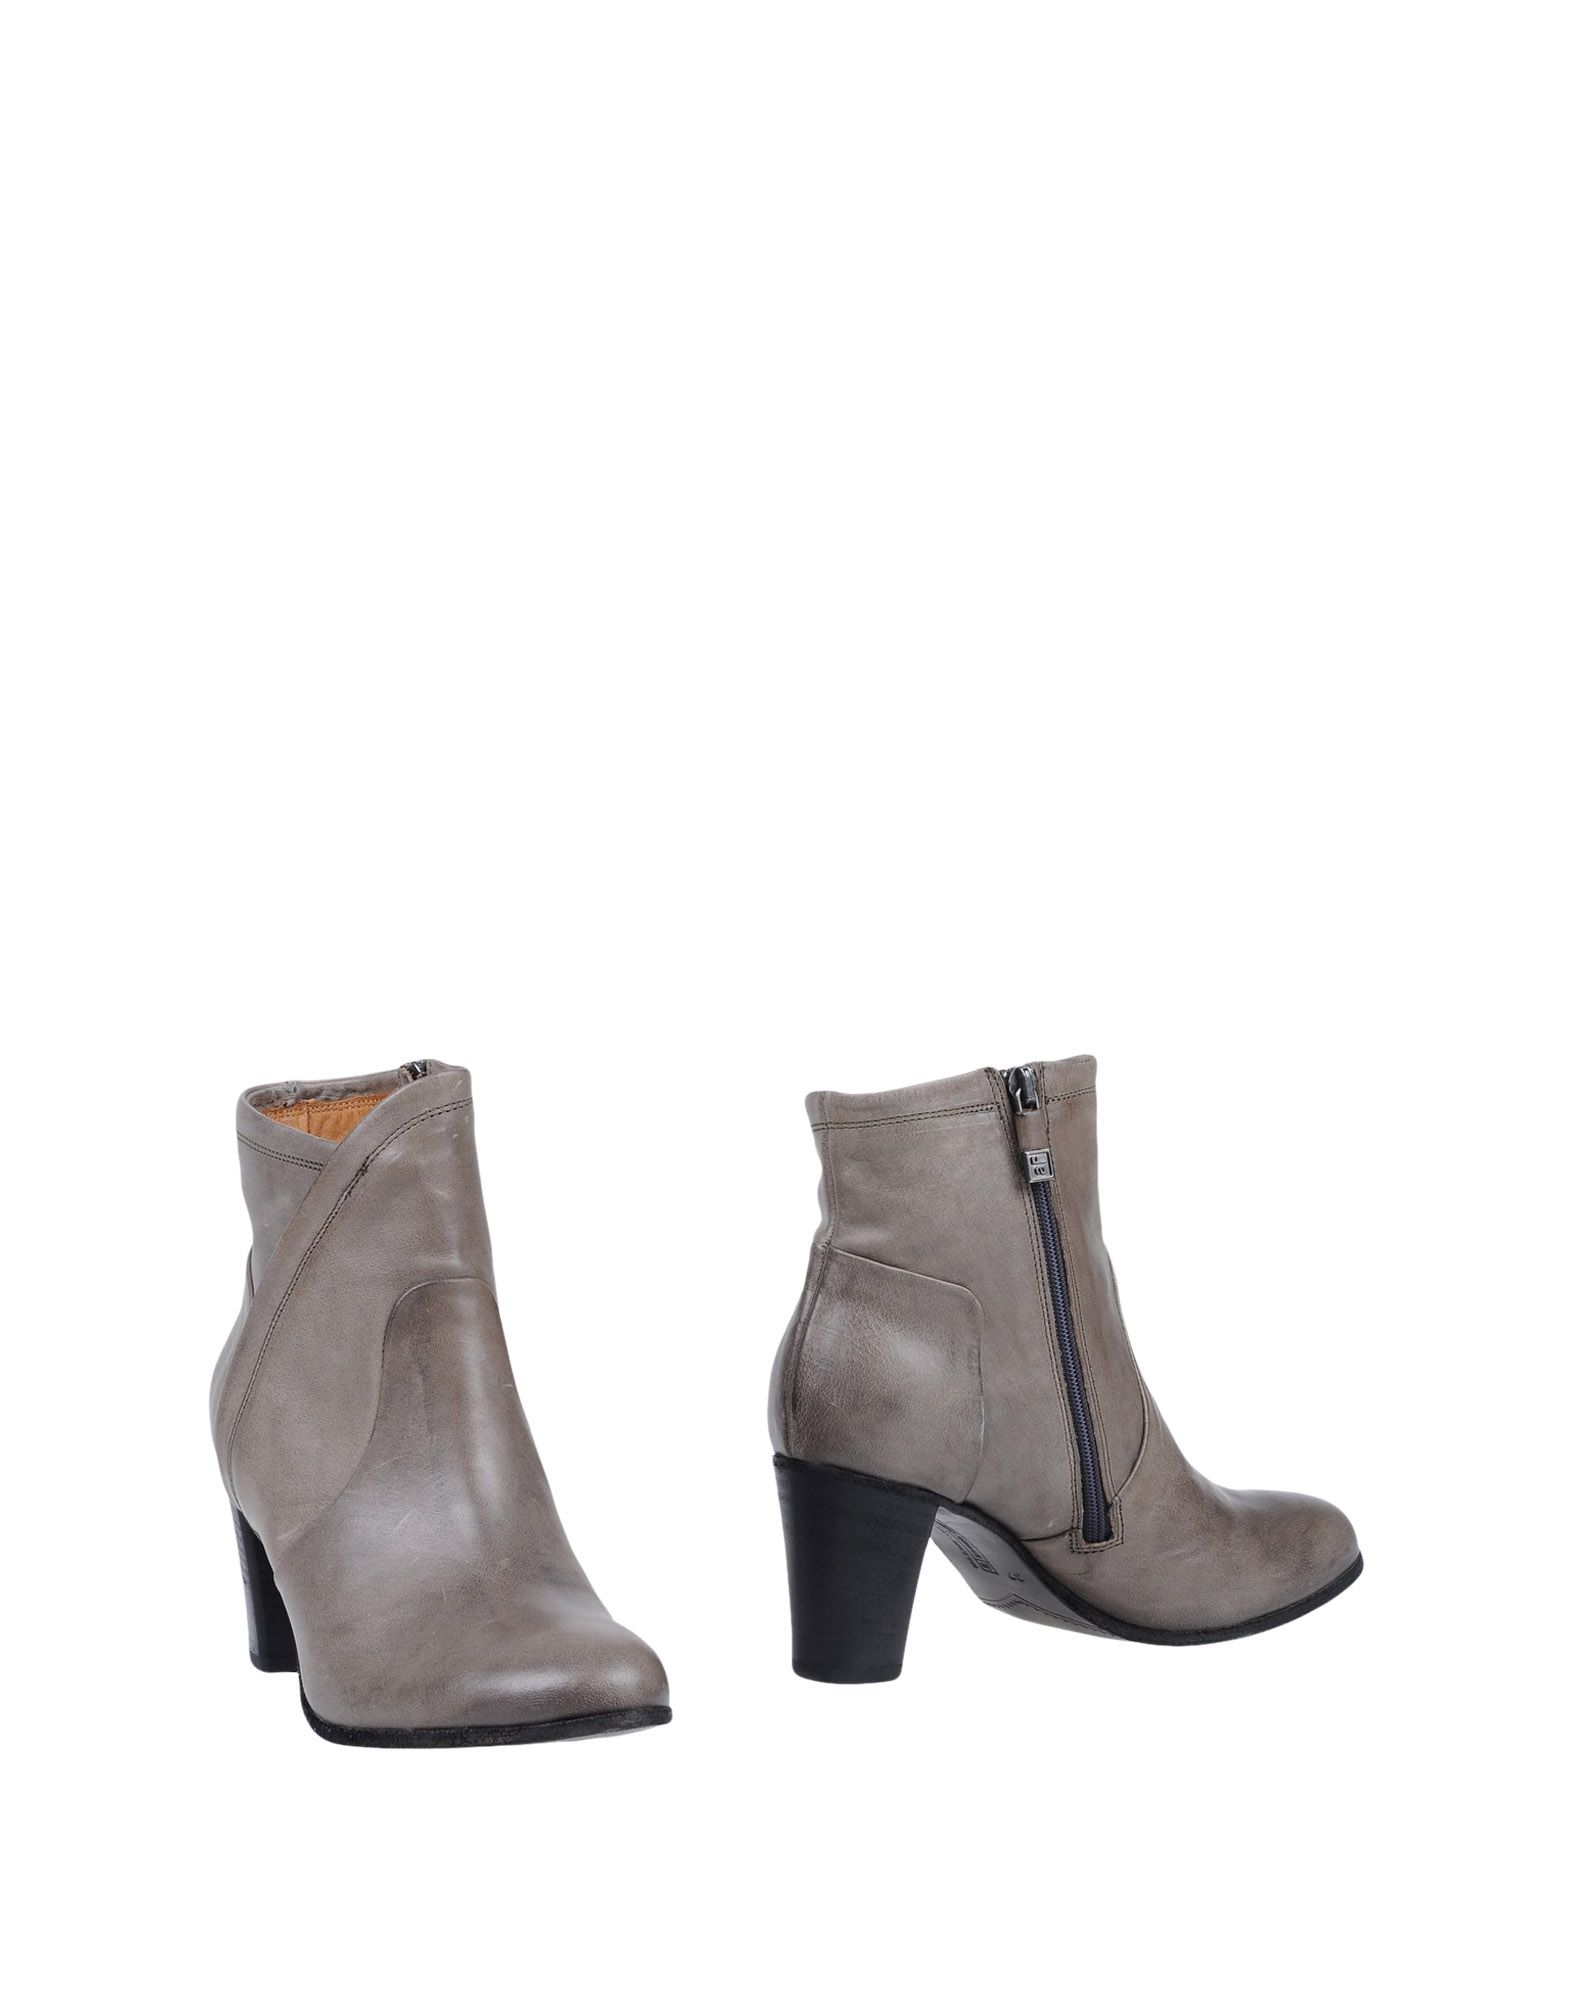 Bottine Alberto Fermani Femme - Bottines Alberto Fermani sur